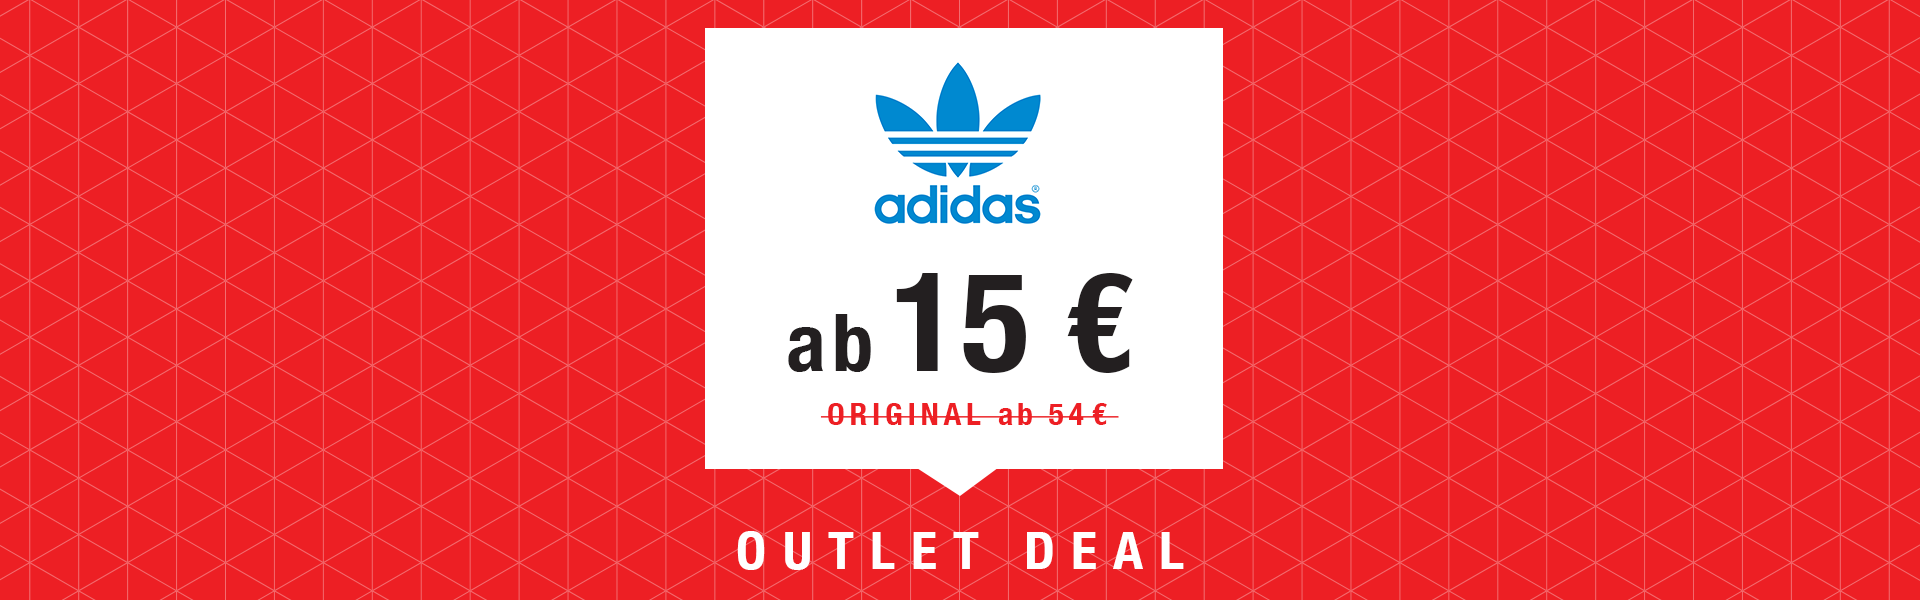 ZALANDO-OUTLET adidas Deal